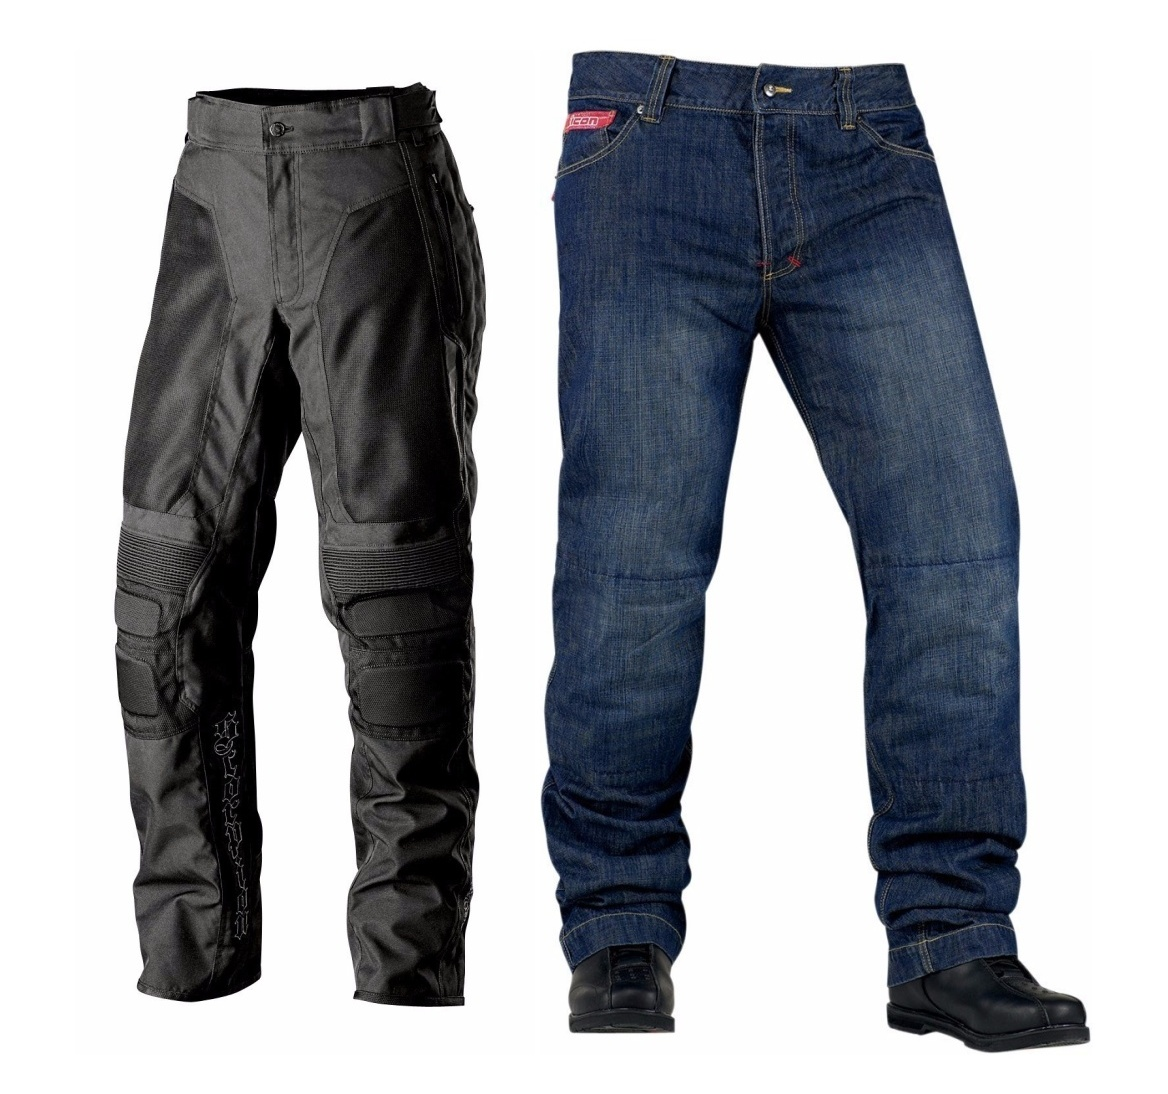 Ride Safe With Motoroids: How to buy a full riding gear ...